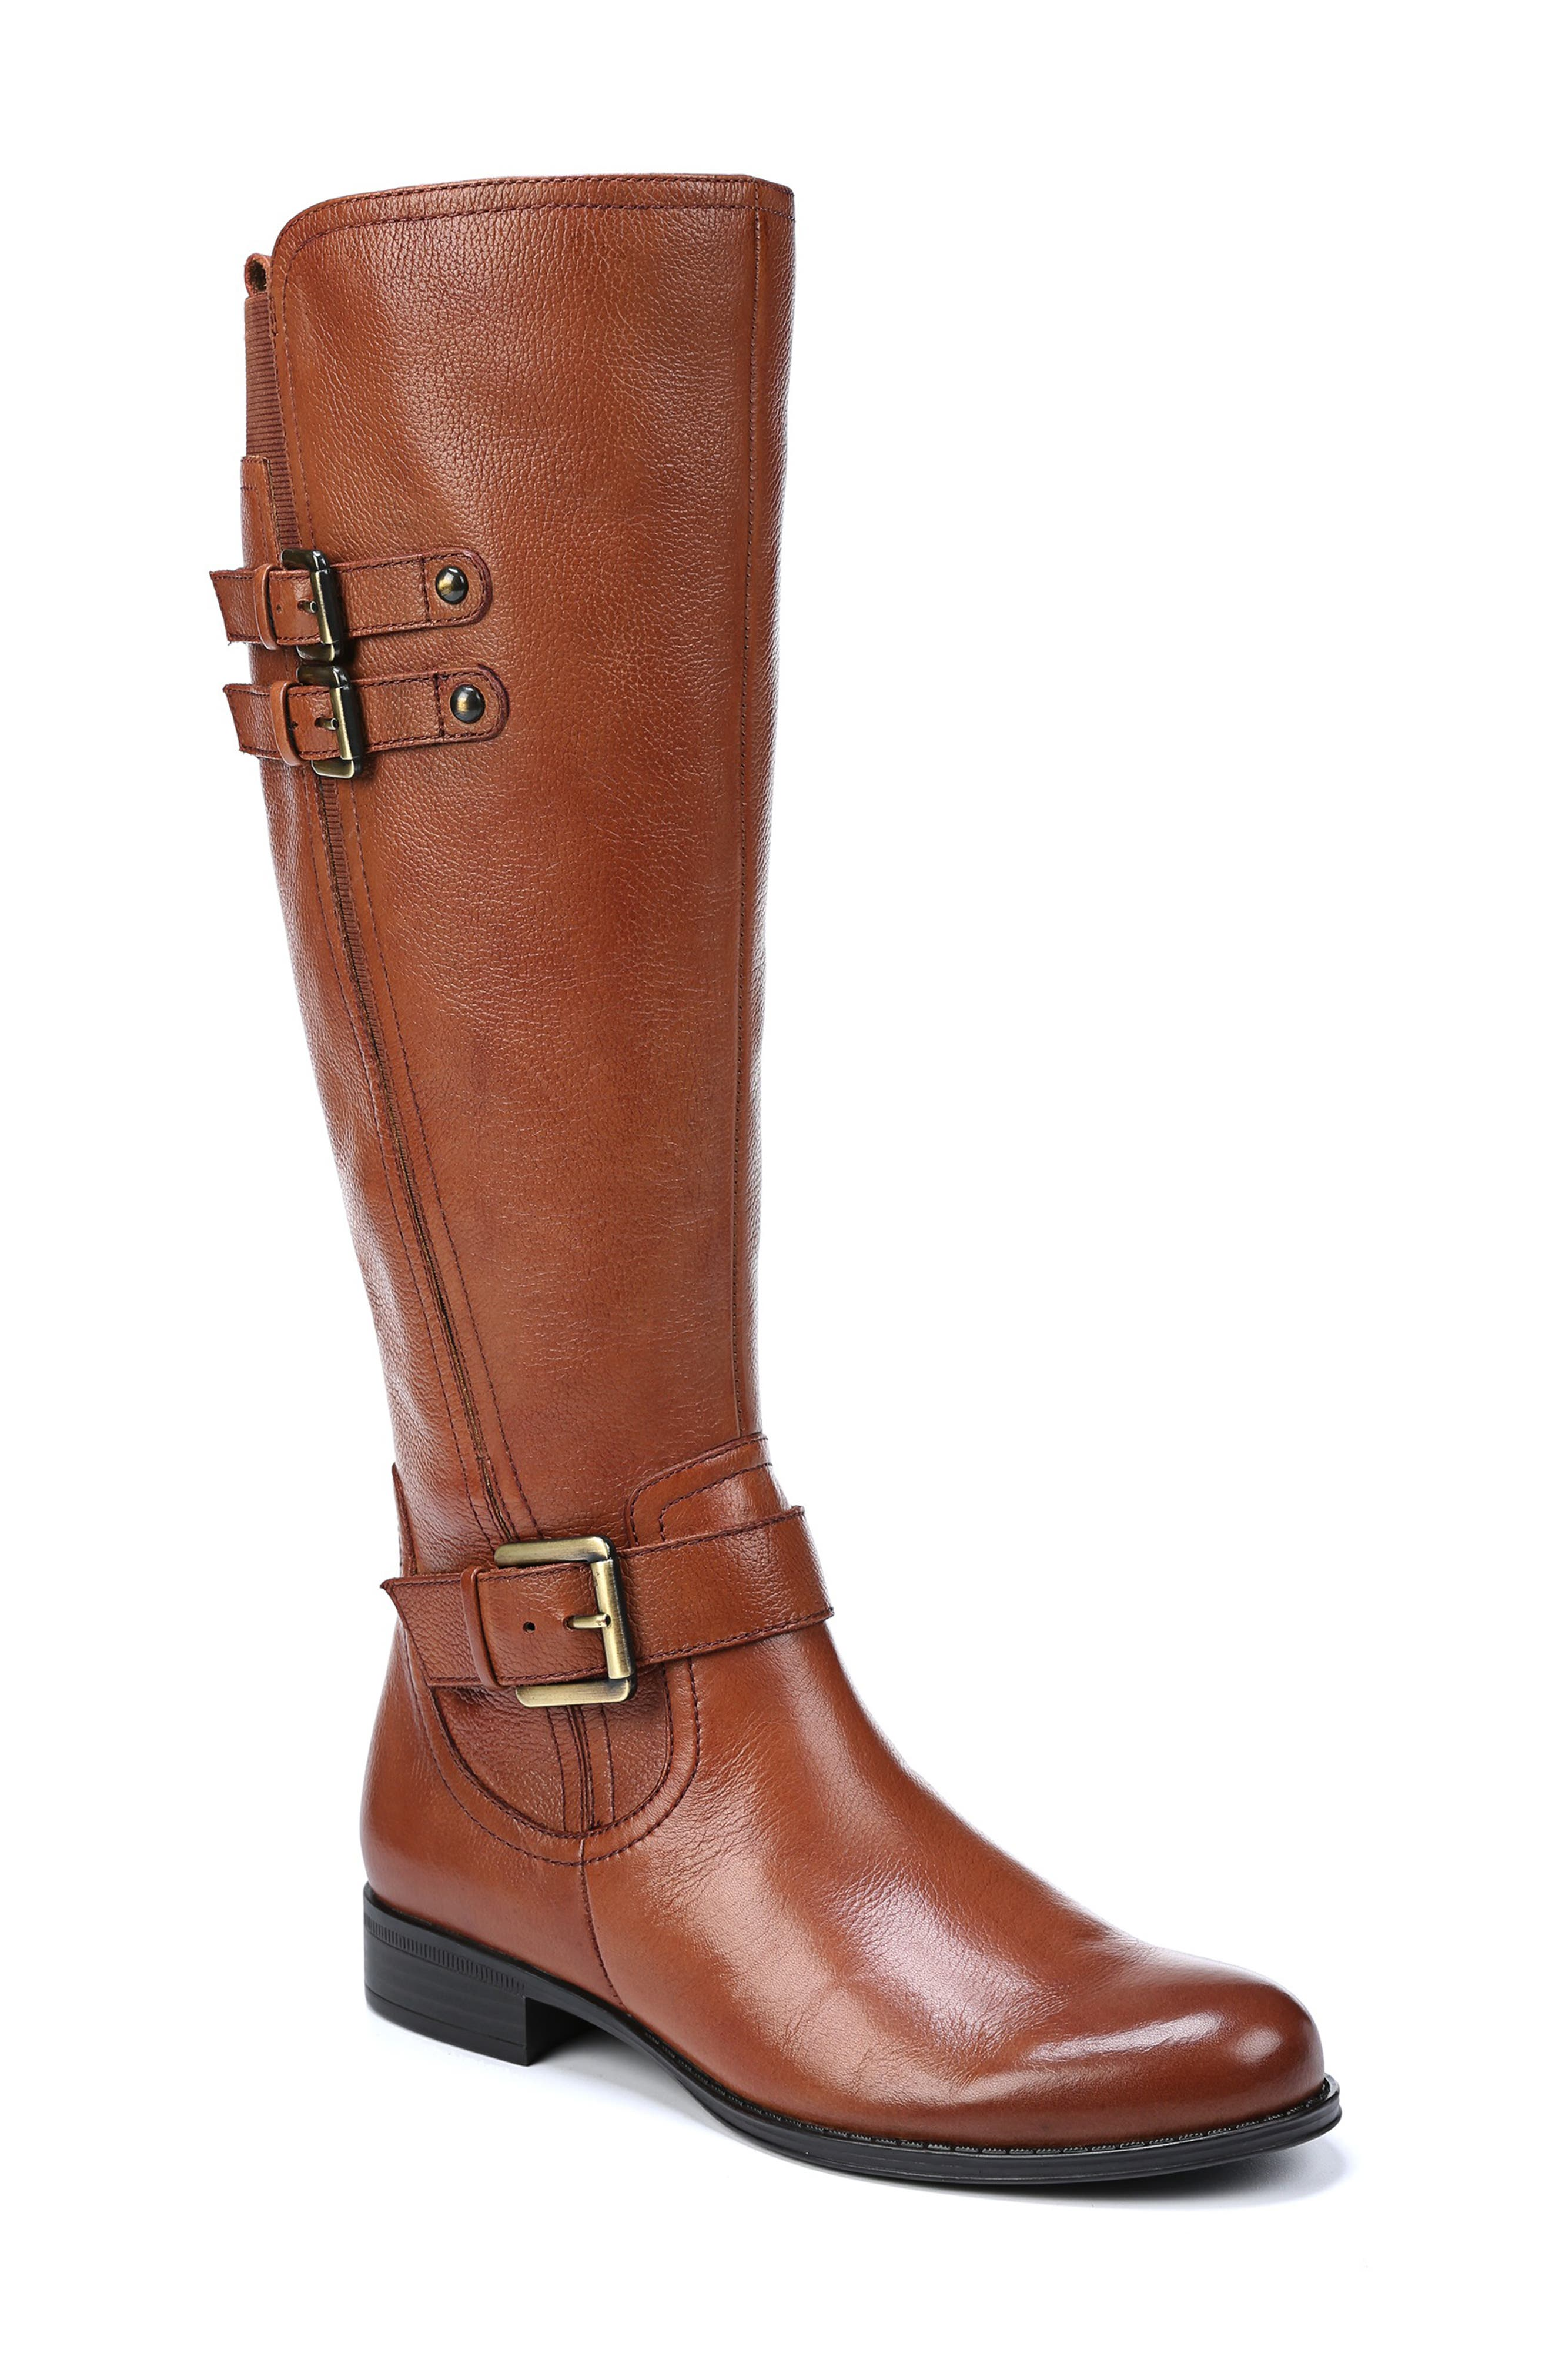 NATURALIZER Jessie Knee High Riding Boot, Main, color, BANANA BREAD LEATHER